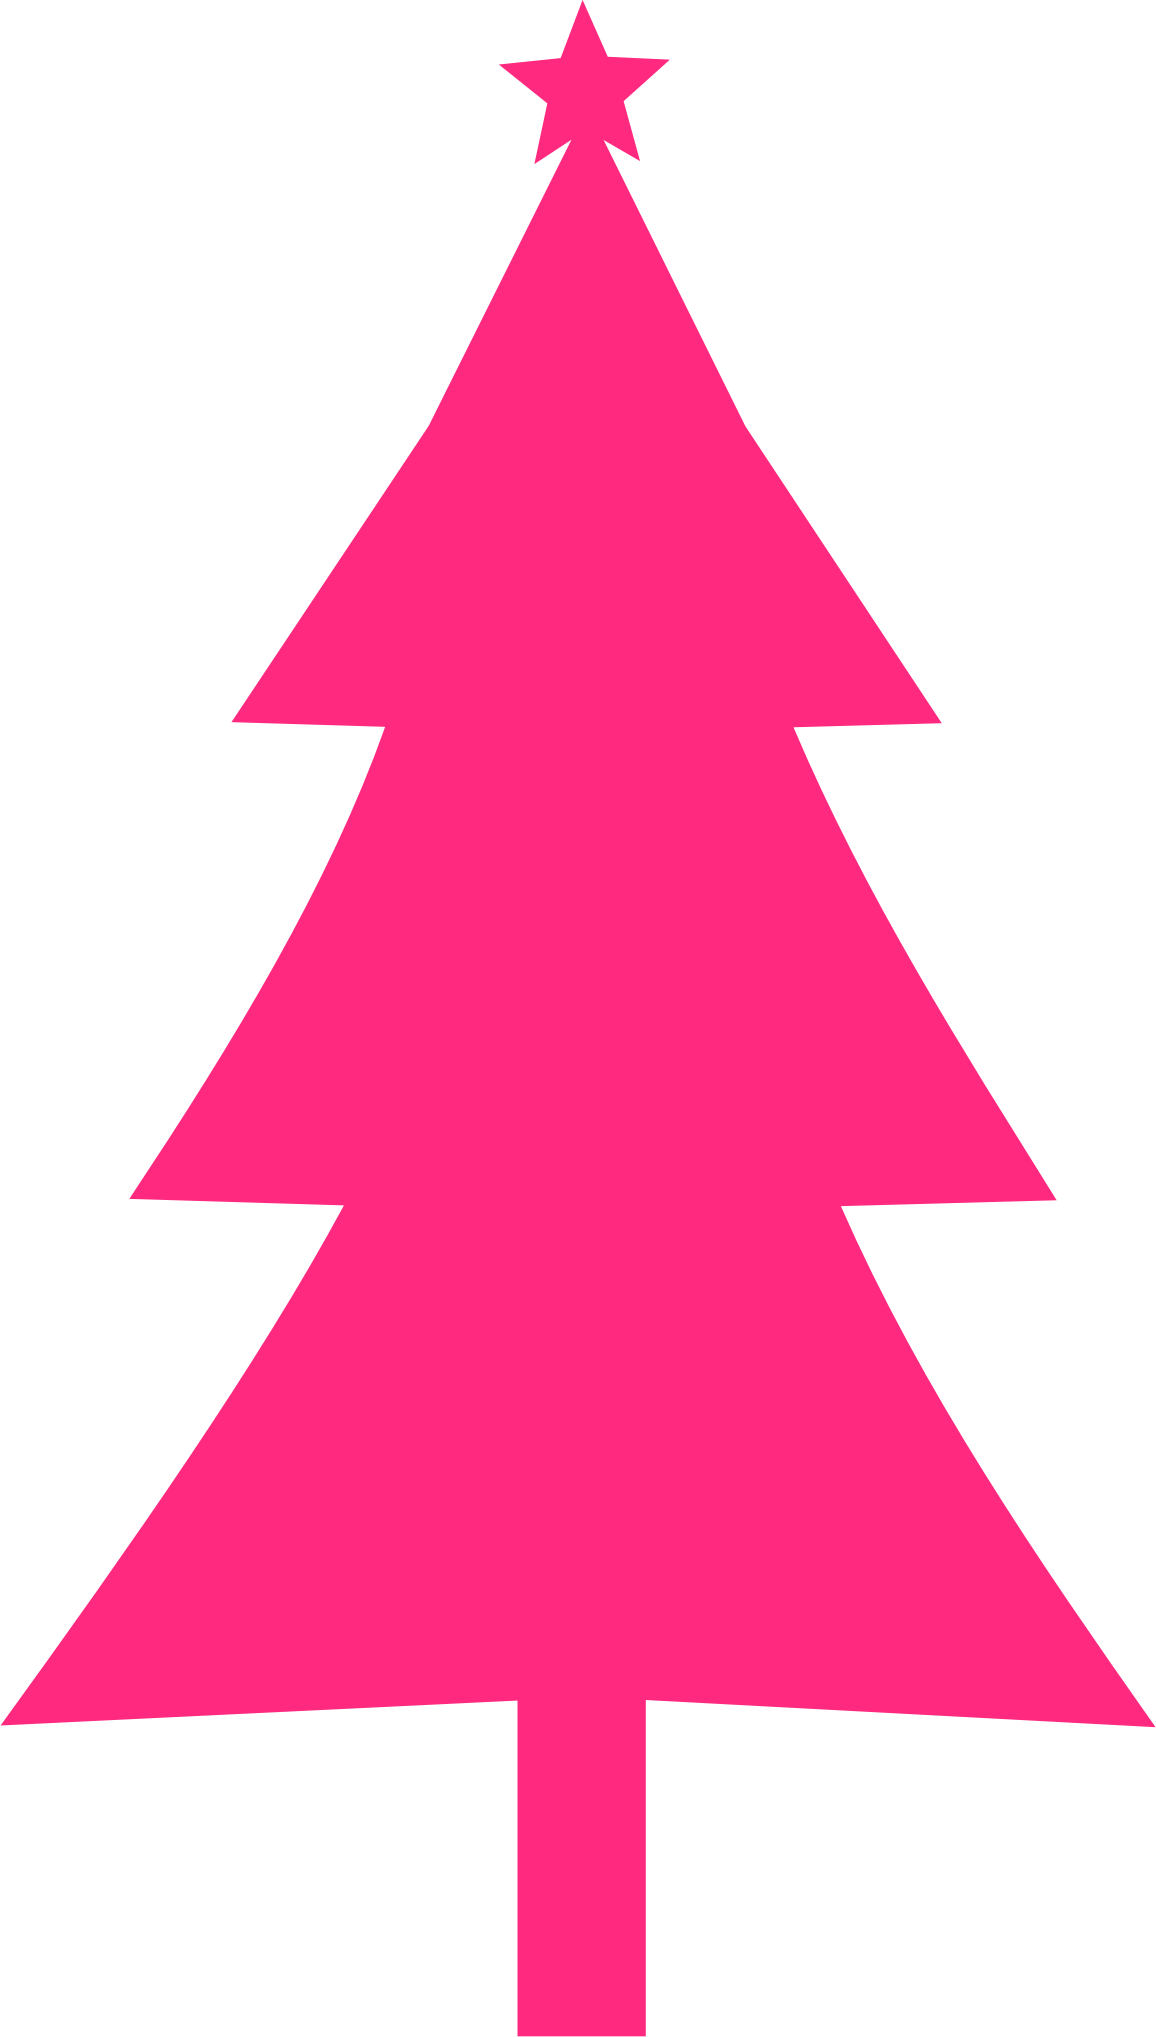 Pink christmas tree clipart vector transparent stock Clipart - Christmas tree Silhouette vector transparent stock